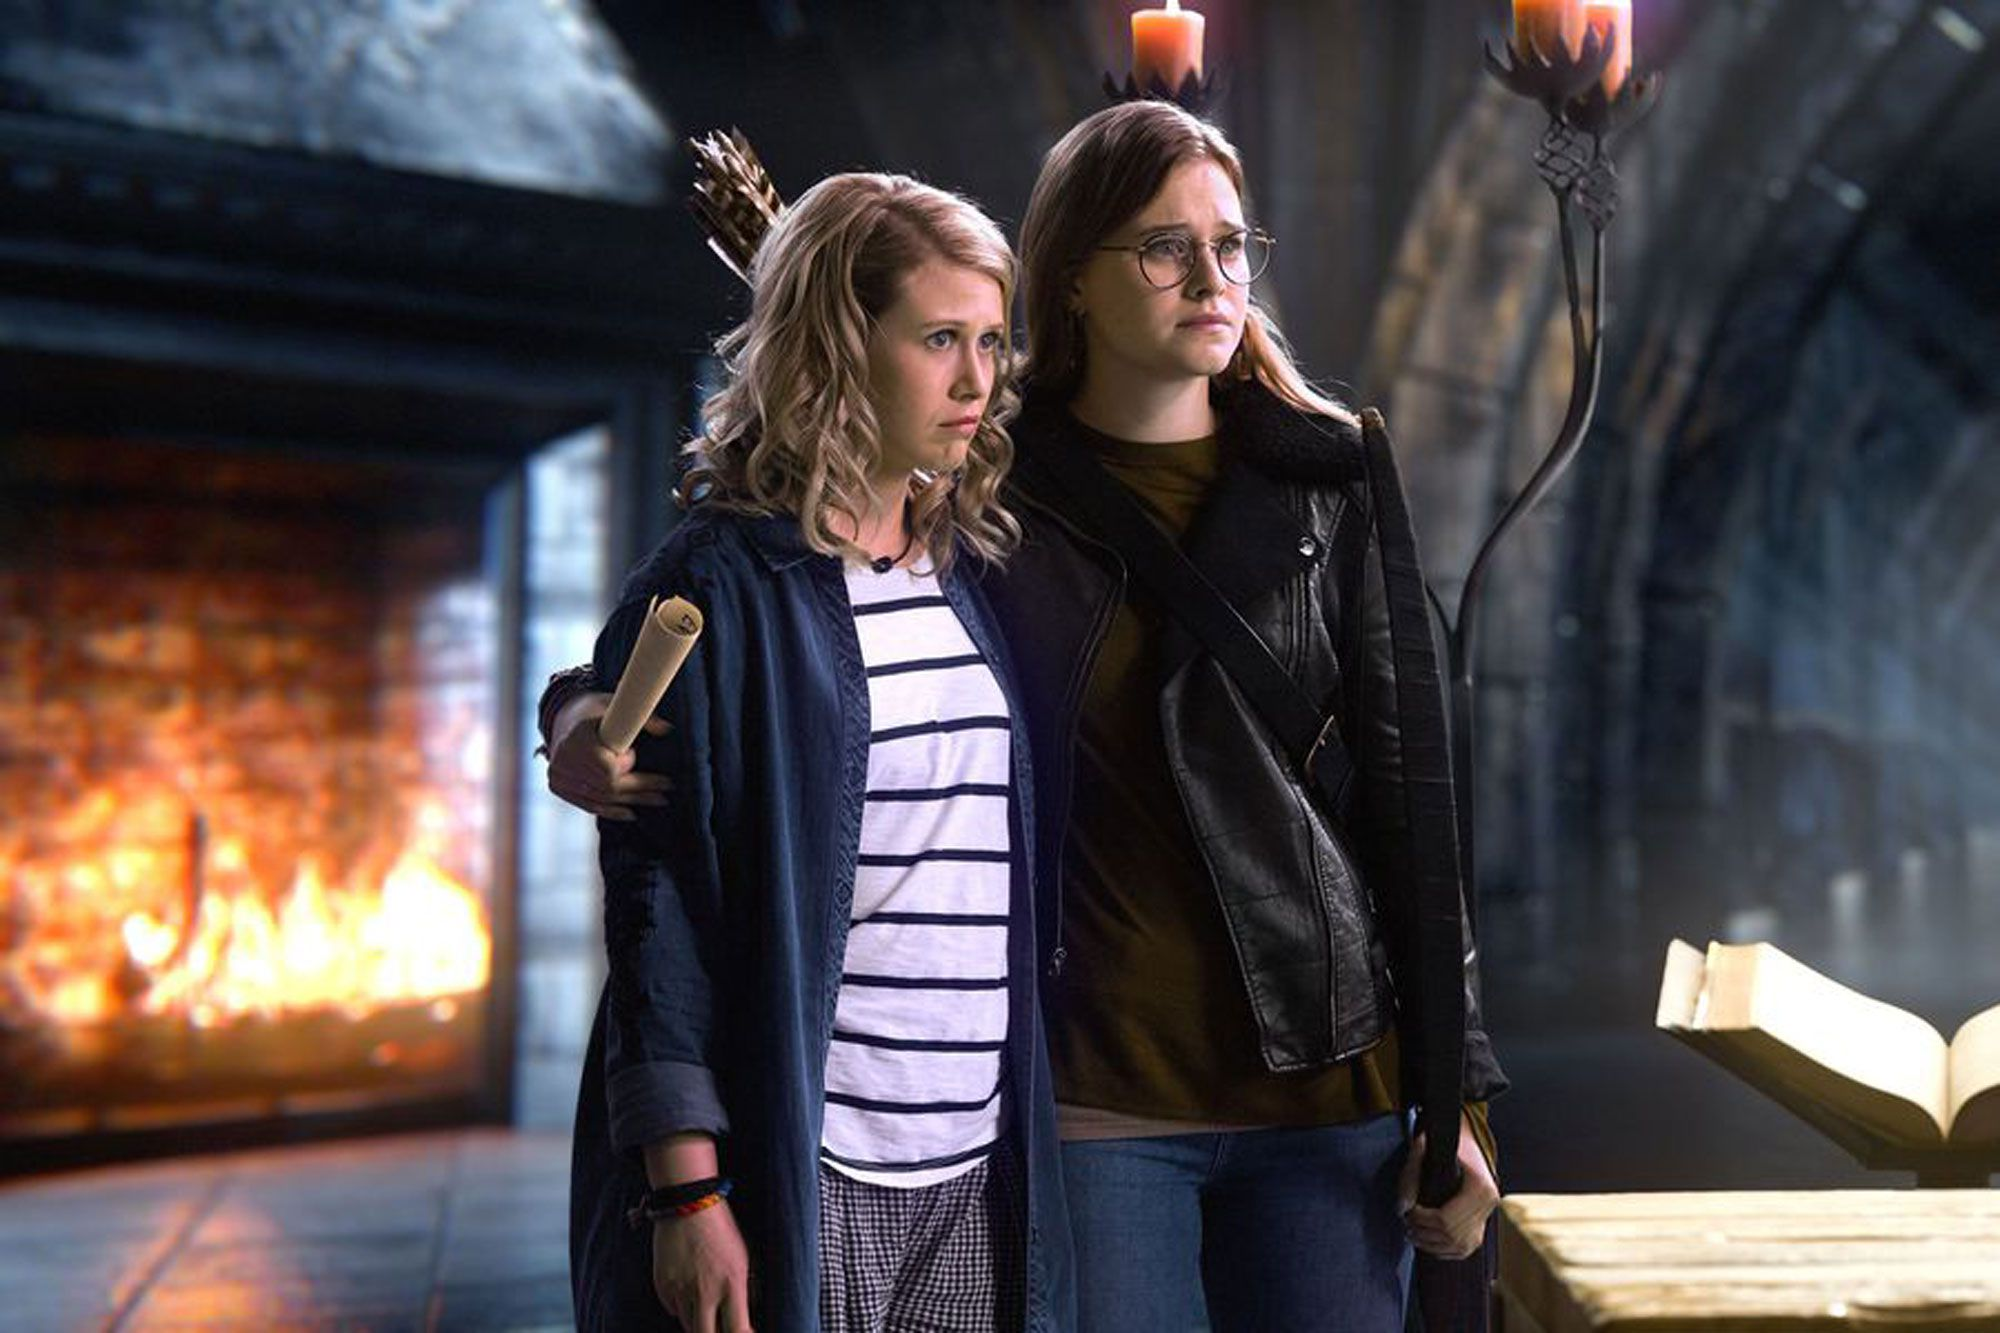 Tilly (Elle McKinnon) and Robin (Tiera Skovbye) in Once Upon a Time